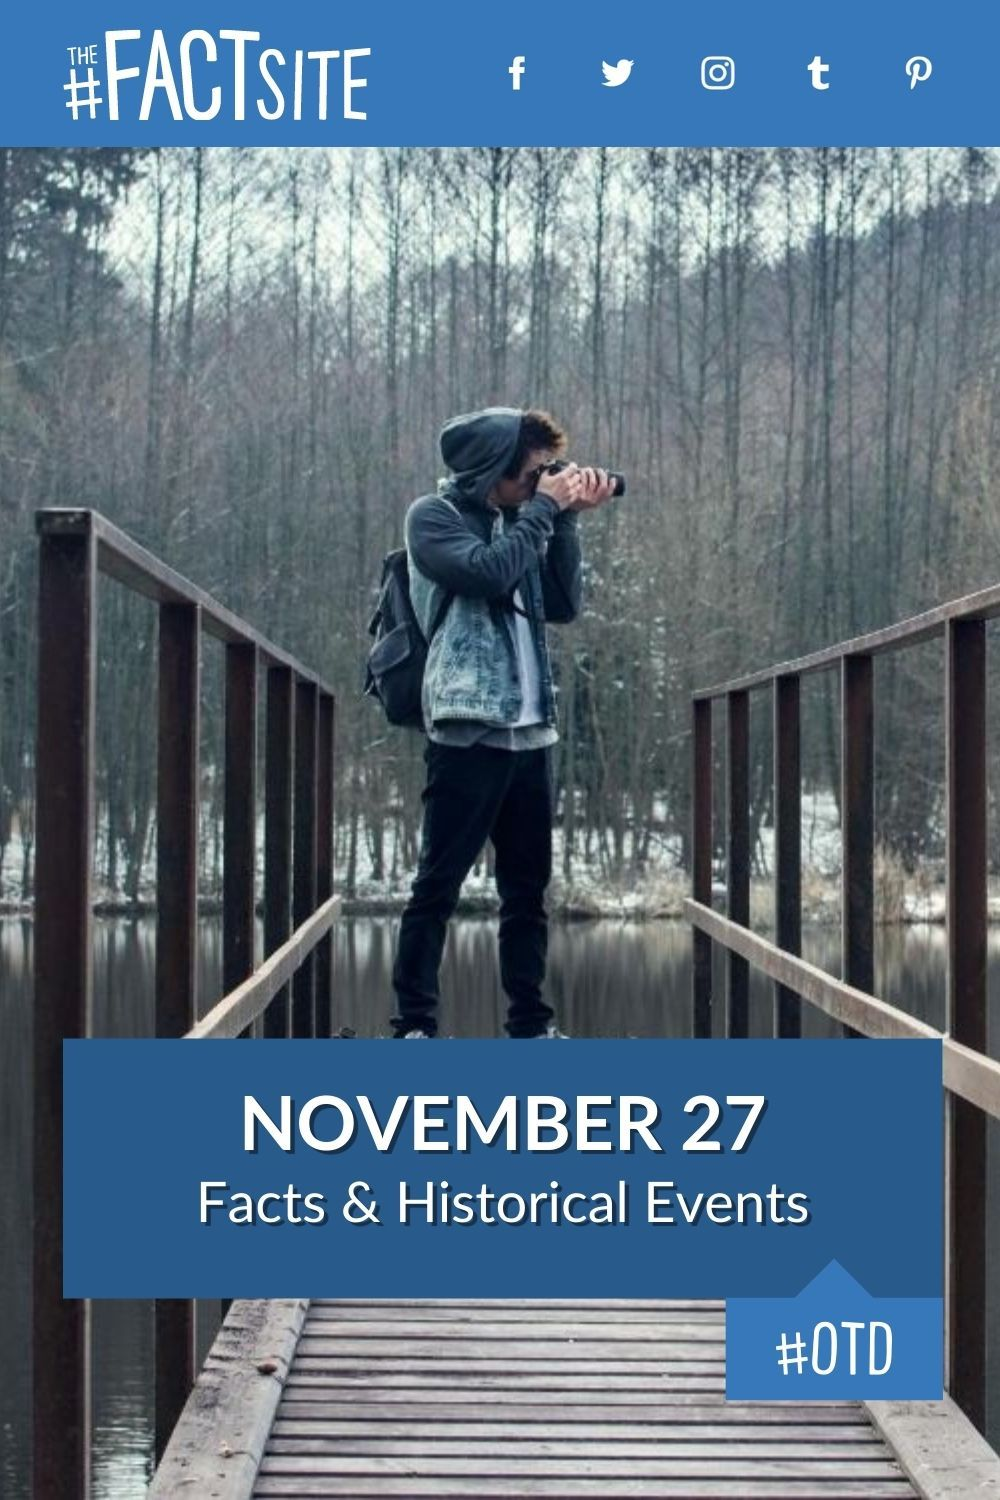 Facts & Historic Events That Happened on November 27